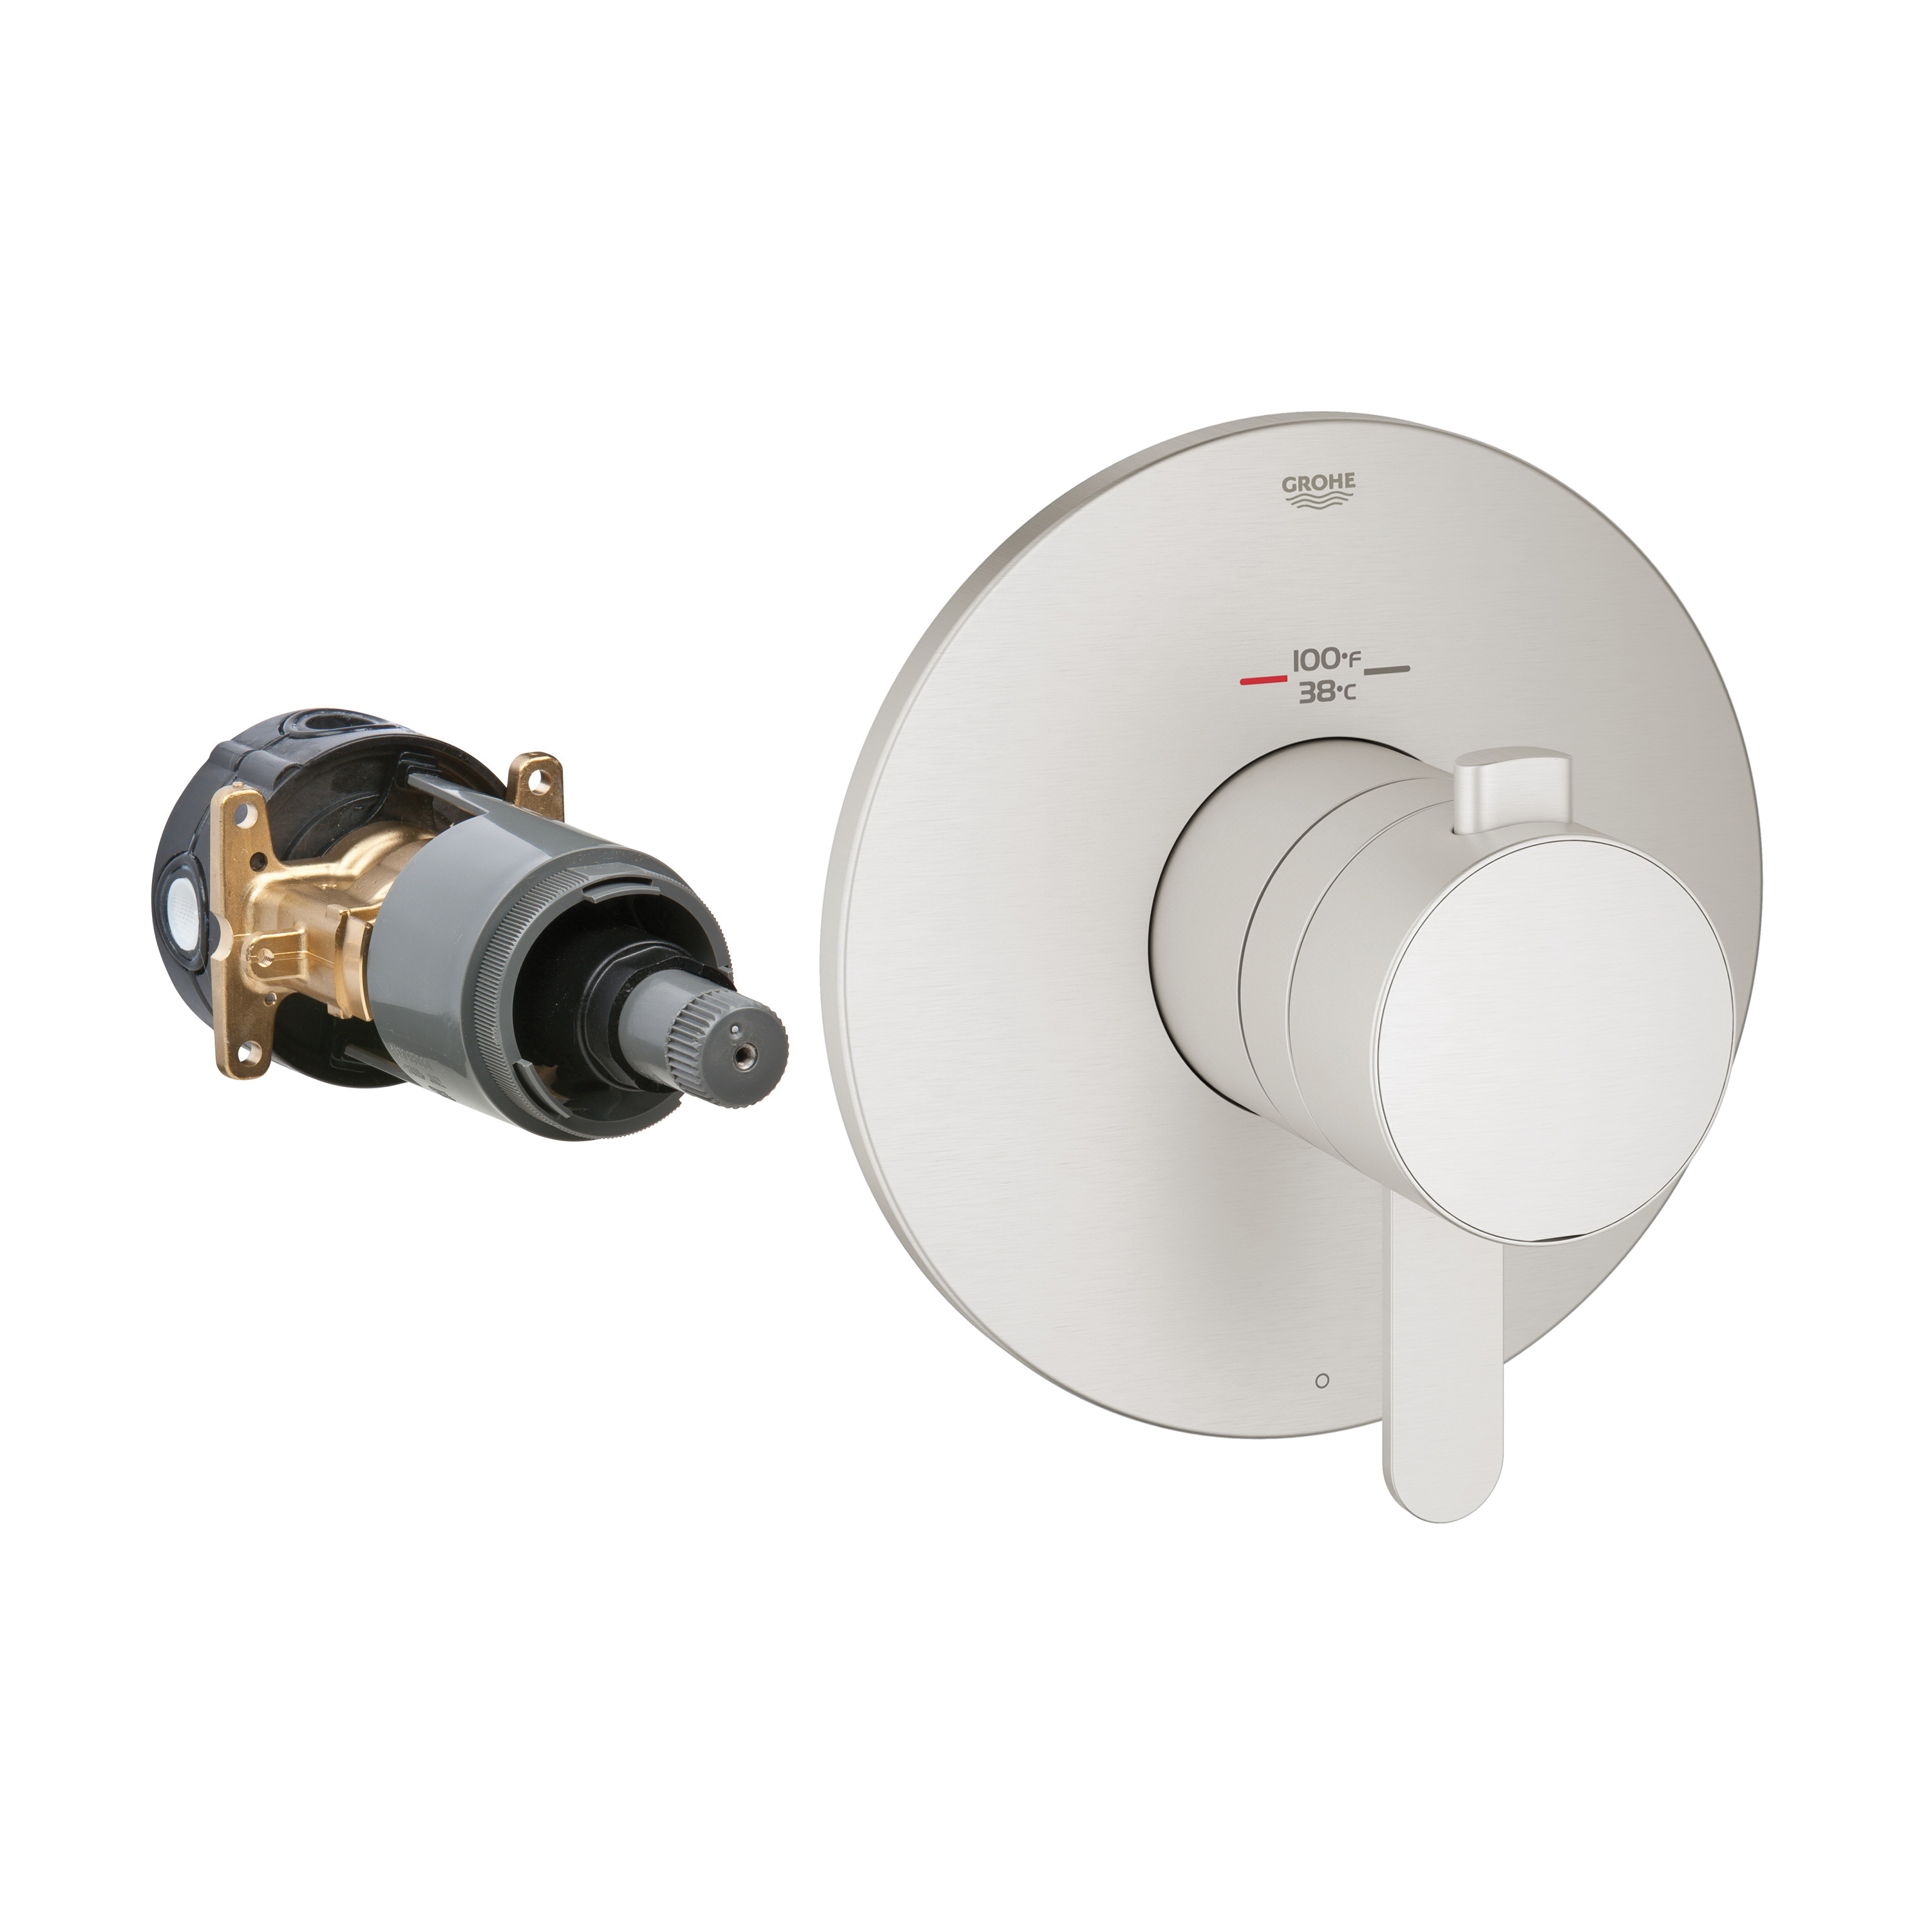 GROHE 19869EN0 Europlus® 1-Function Trim, 6.3 gpm Shower, Hand Shower Yes/No: No, Brushed Nickel